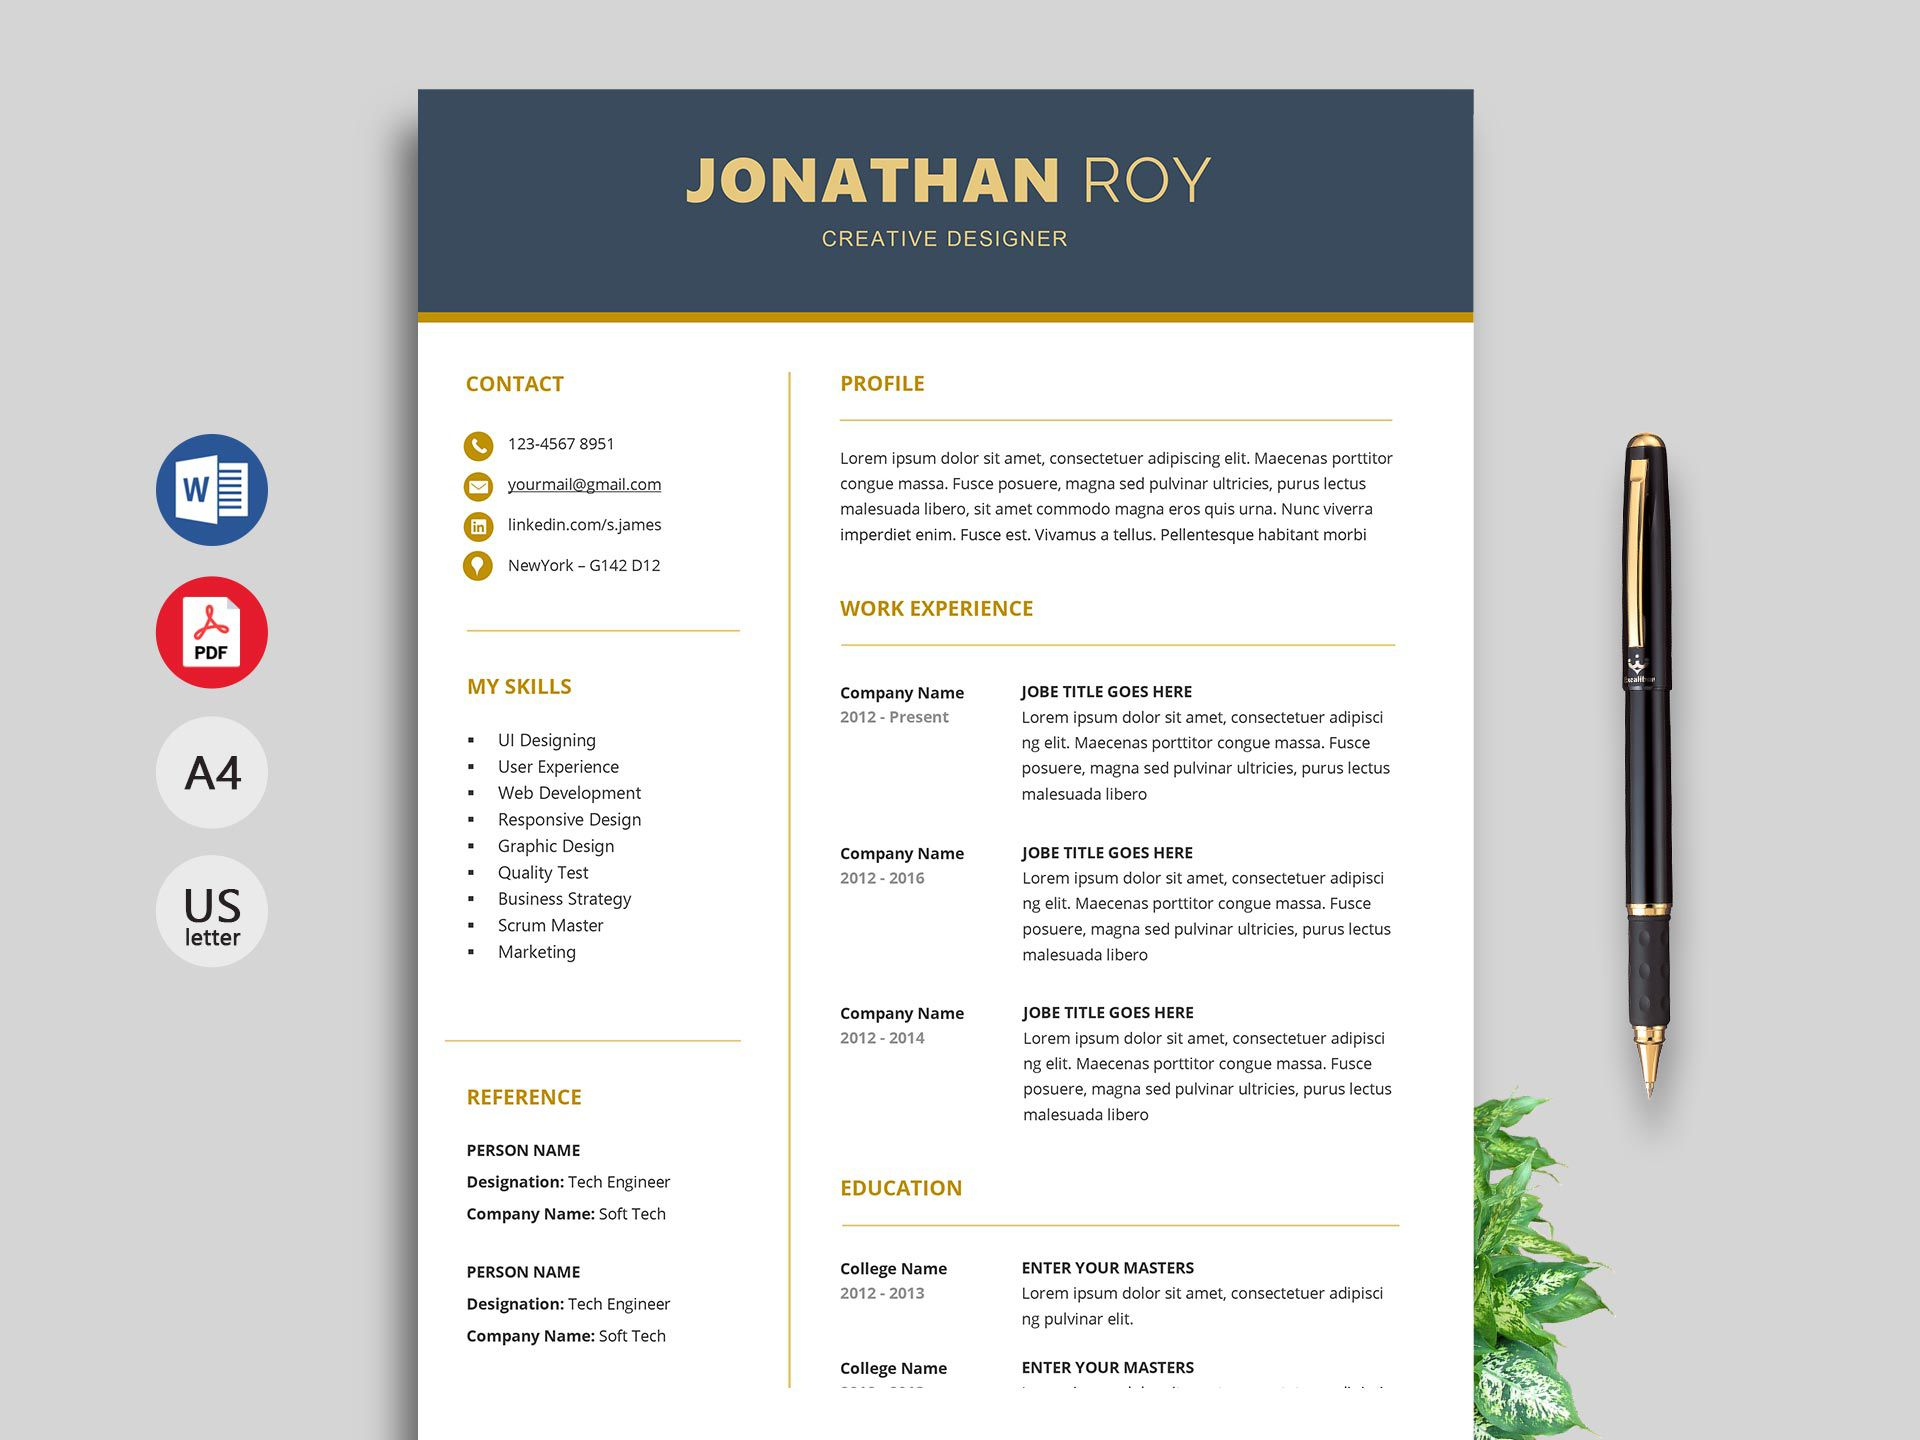 006 Unusual Resume Template Word Download Image  For Fresher In Format Free 2020Full